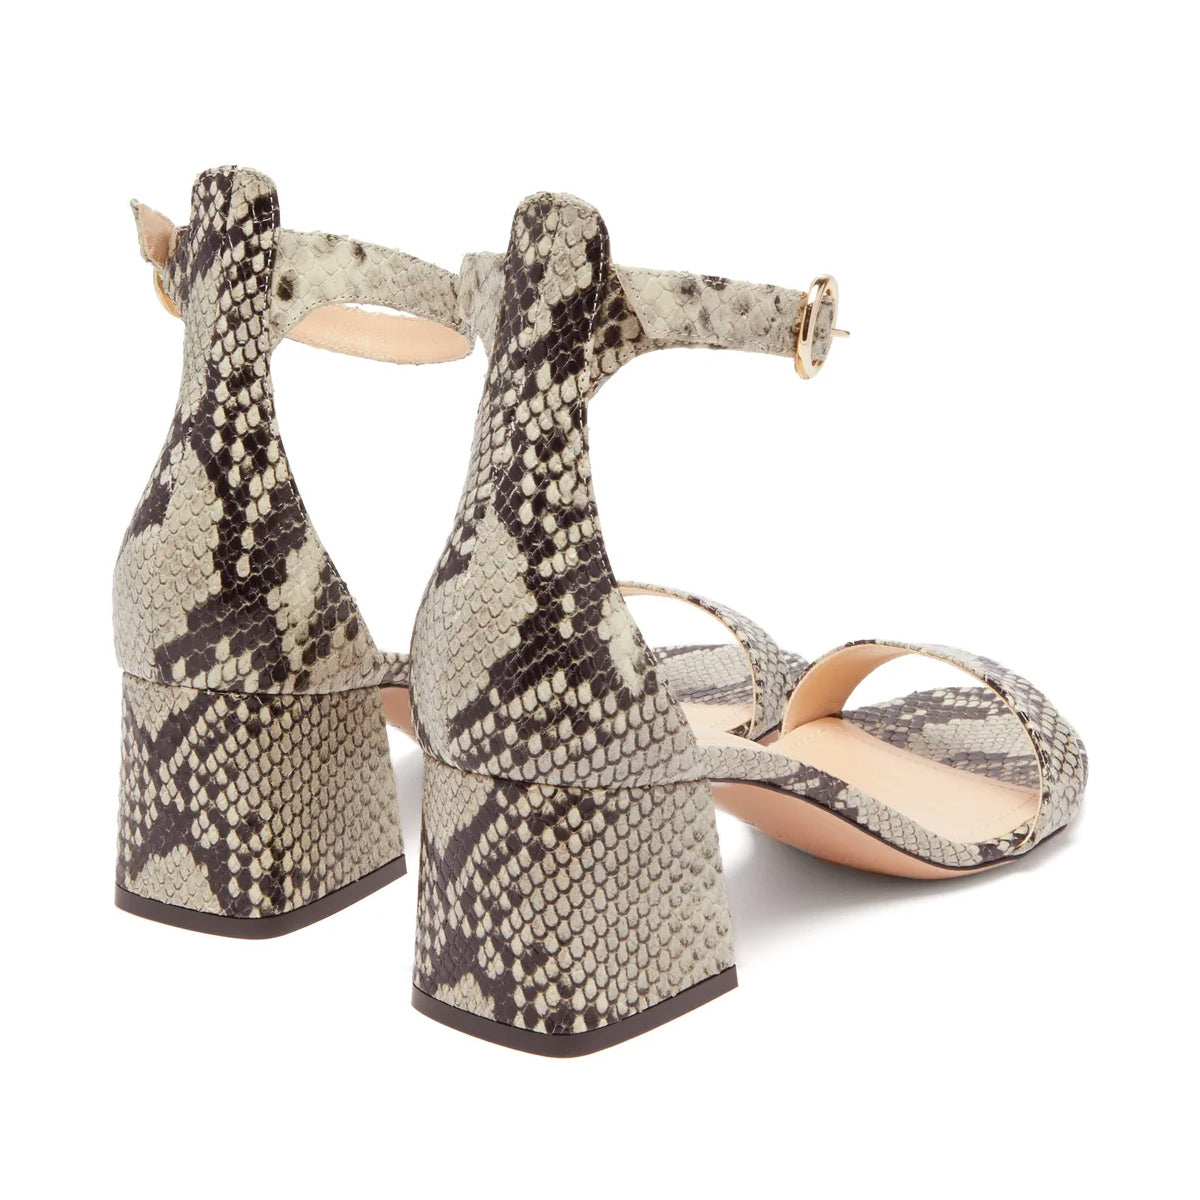 55mm Miri Snake Block Heel Sandals